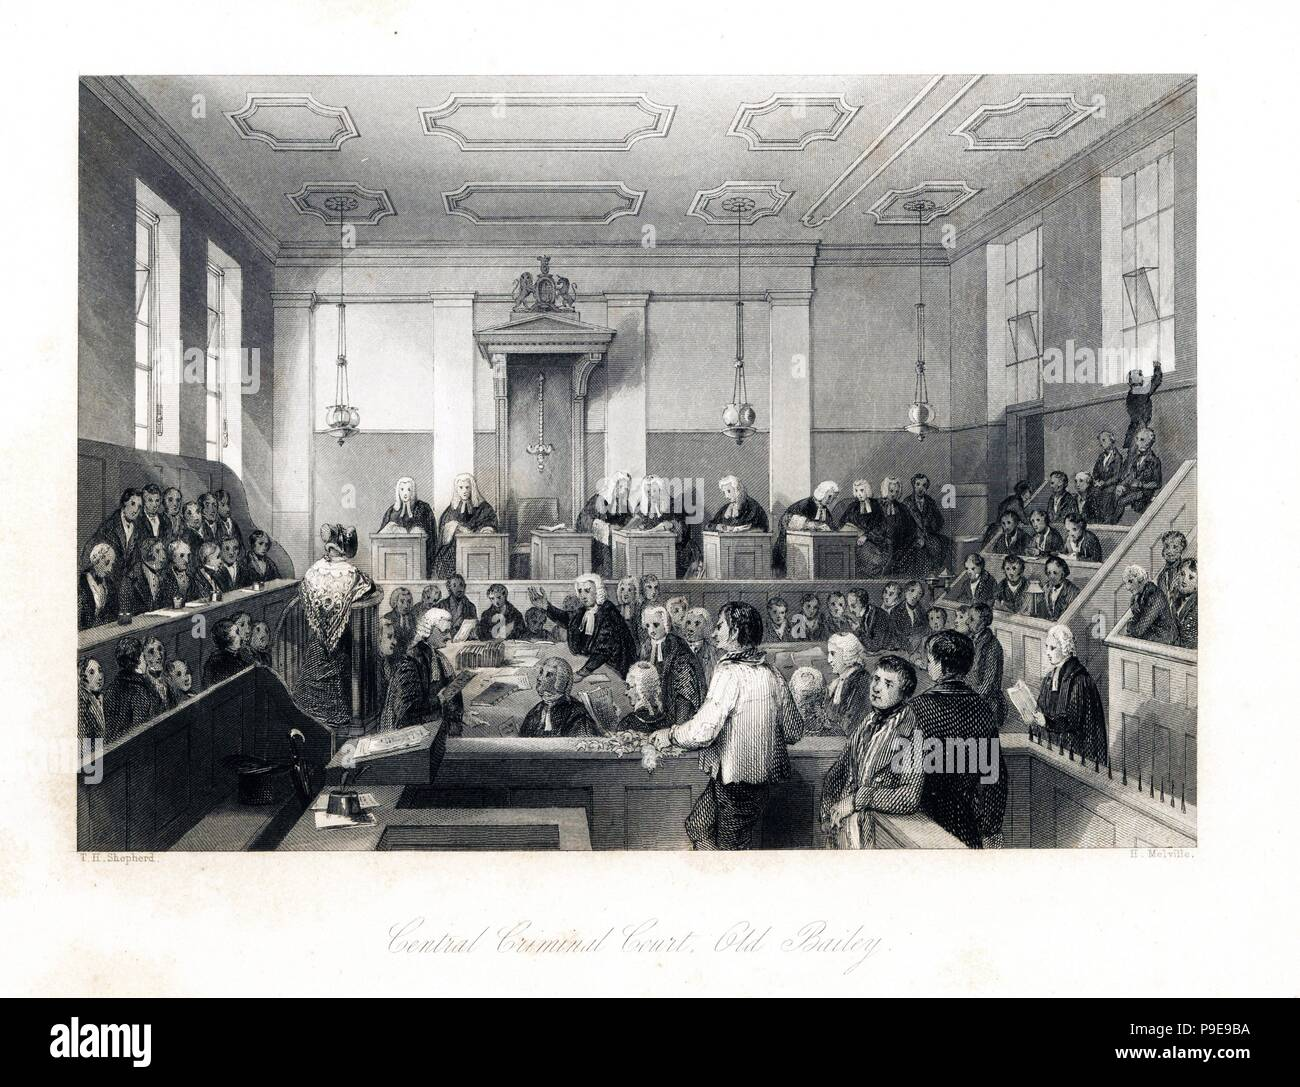 Lawyers question a lady witness before judge and jury at the Central Criminal Court, Old Bailey. Steel engraving by Henry Melville after an illustration by Thomas Hosmer Shepherd from London Interiors, Their Costumes and Ceremonies, Joshua Mead, London, 1841. - Stock Image